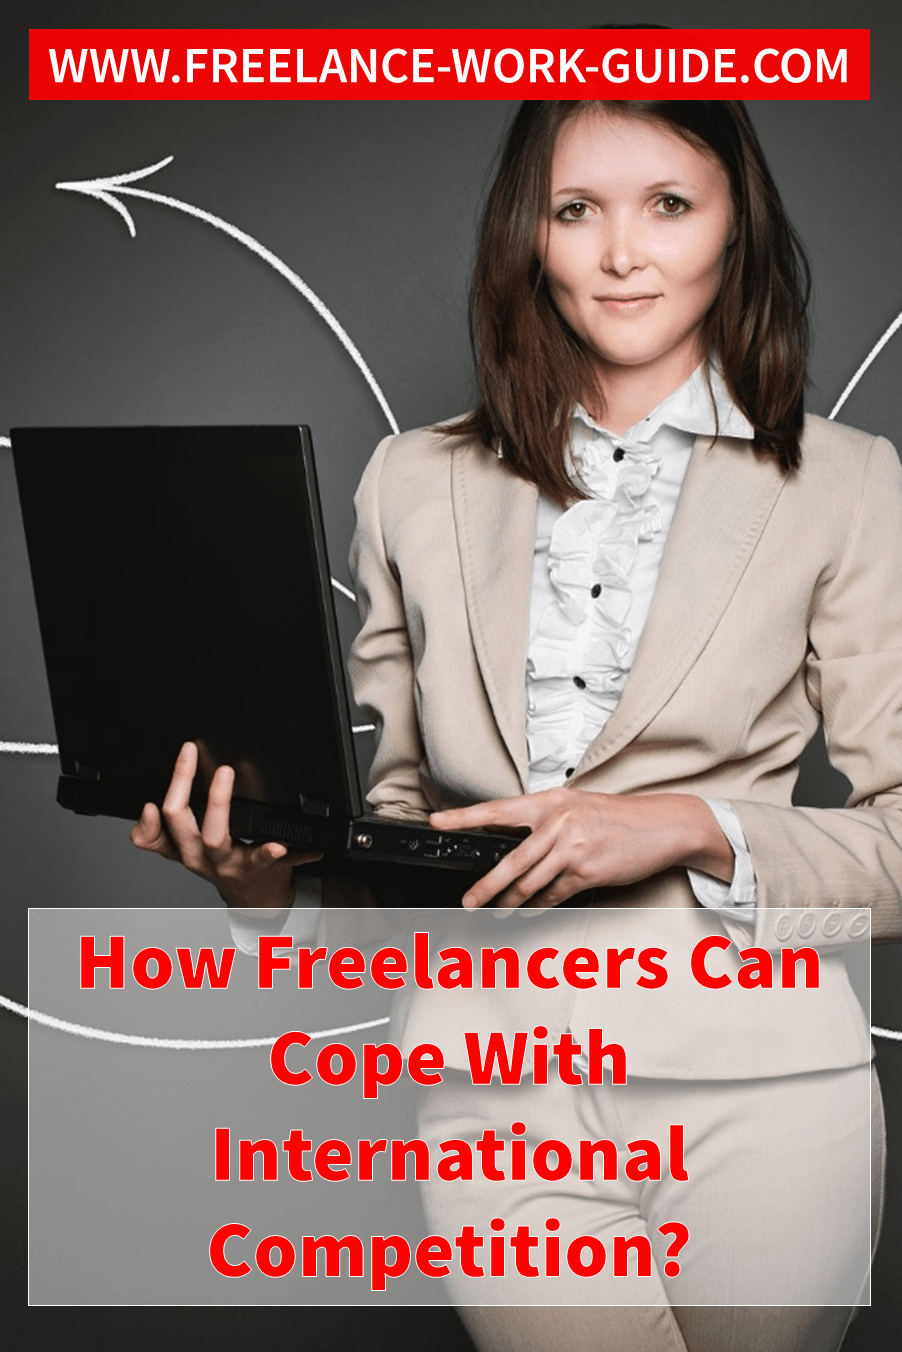 Freelancing appeals to millions of people around the world and freelancers continue to take up a large proportion of the world's global workforce with the percentage continues to grow.